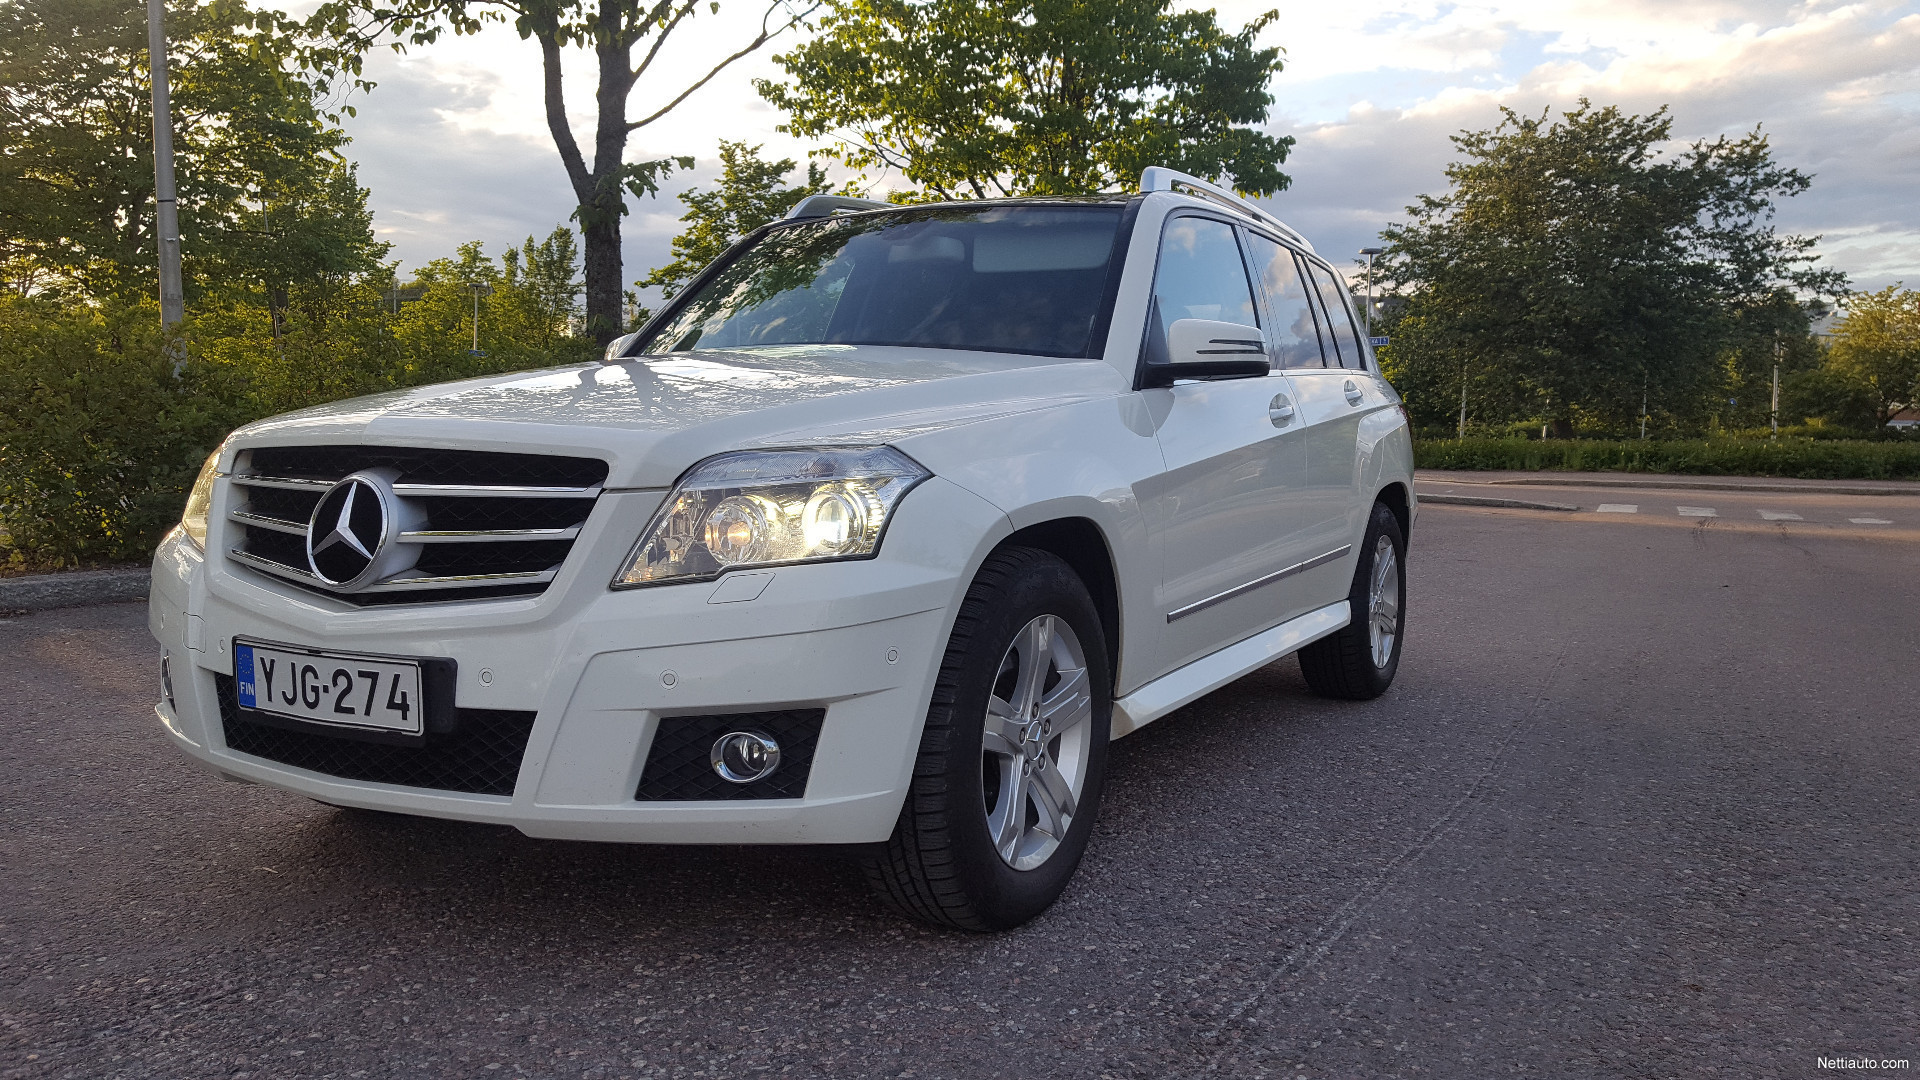 mercedes benz glk 320 cdi 4matic a 4x4 2009 used vehicle. Black Bedroom Furniture Sets. Home Design Ideas